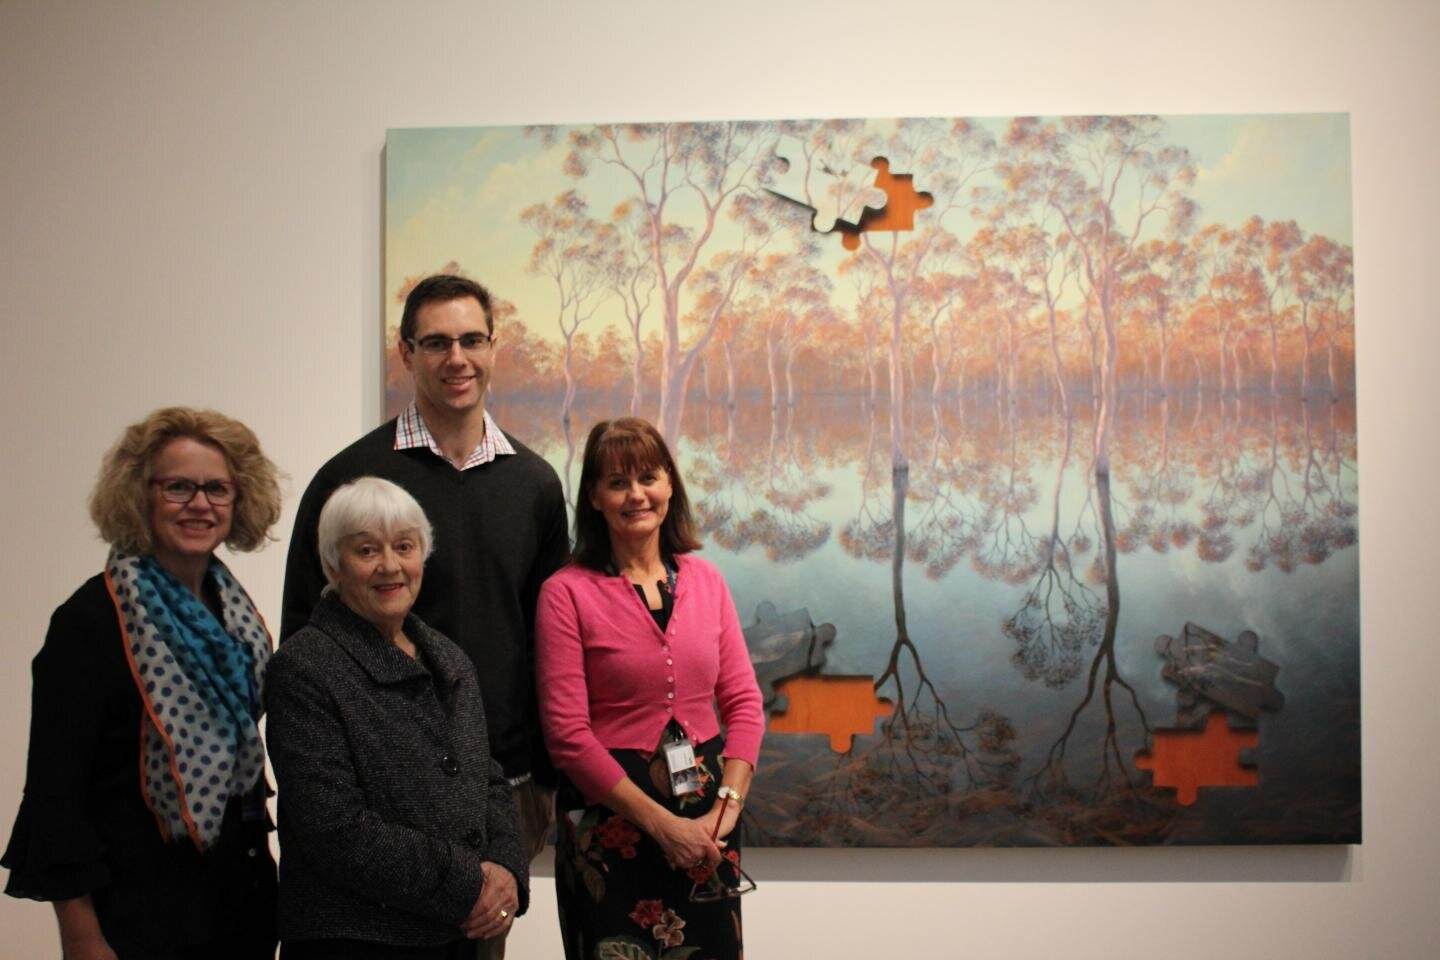 Getting to the 'art' of dementia: Researchers highlight benefits of art intervention